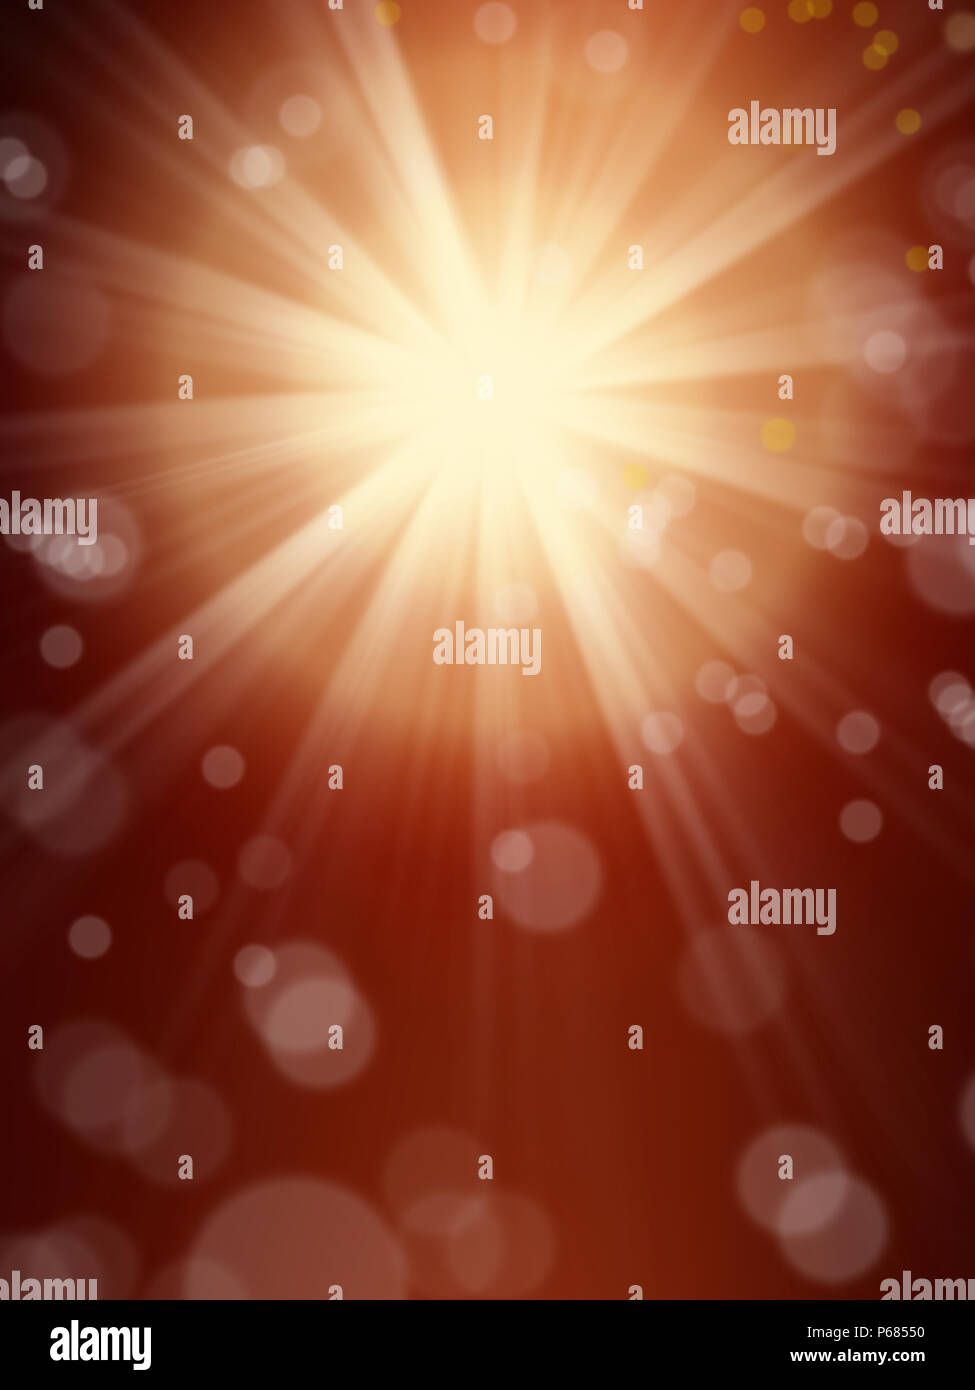 background image of defocused abstract lights and beam of light over red background - Stock Image